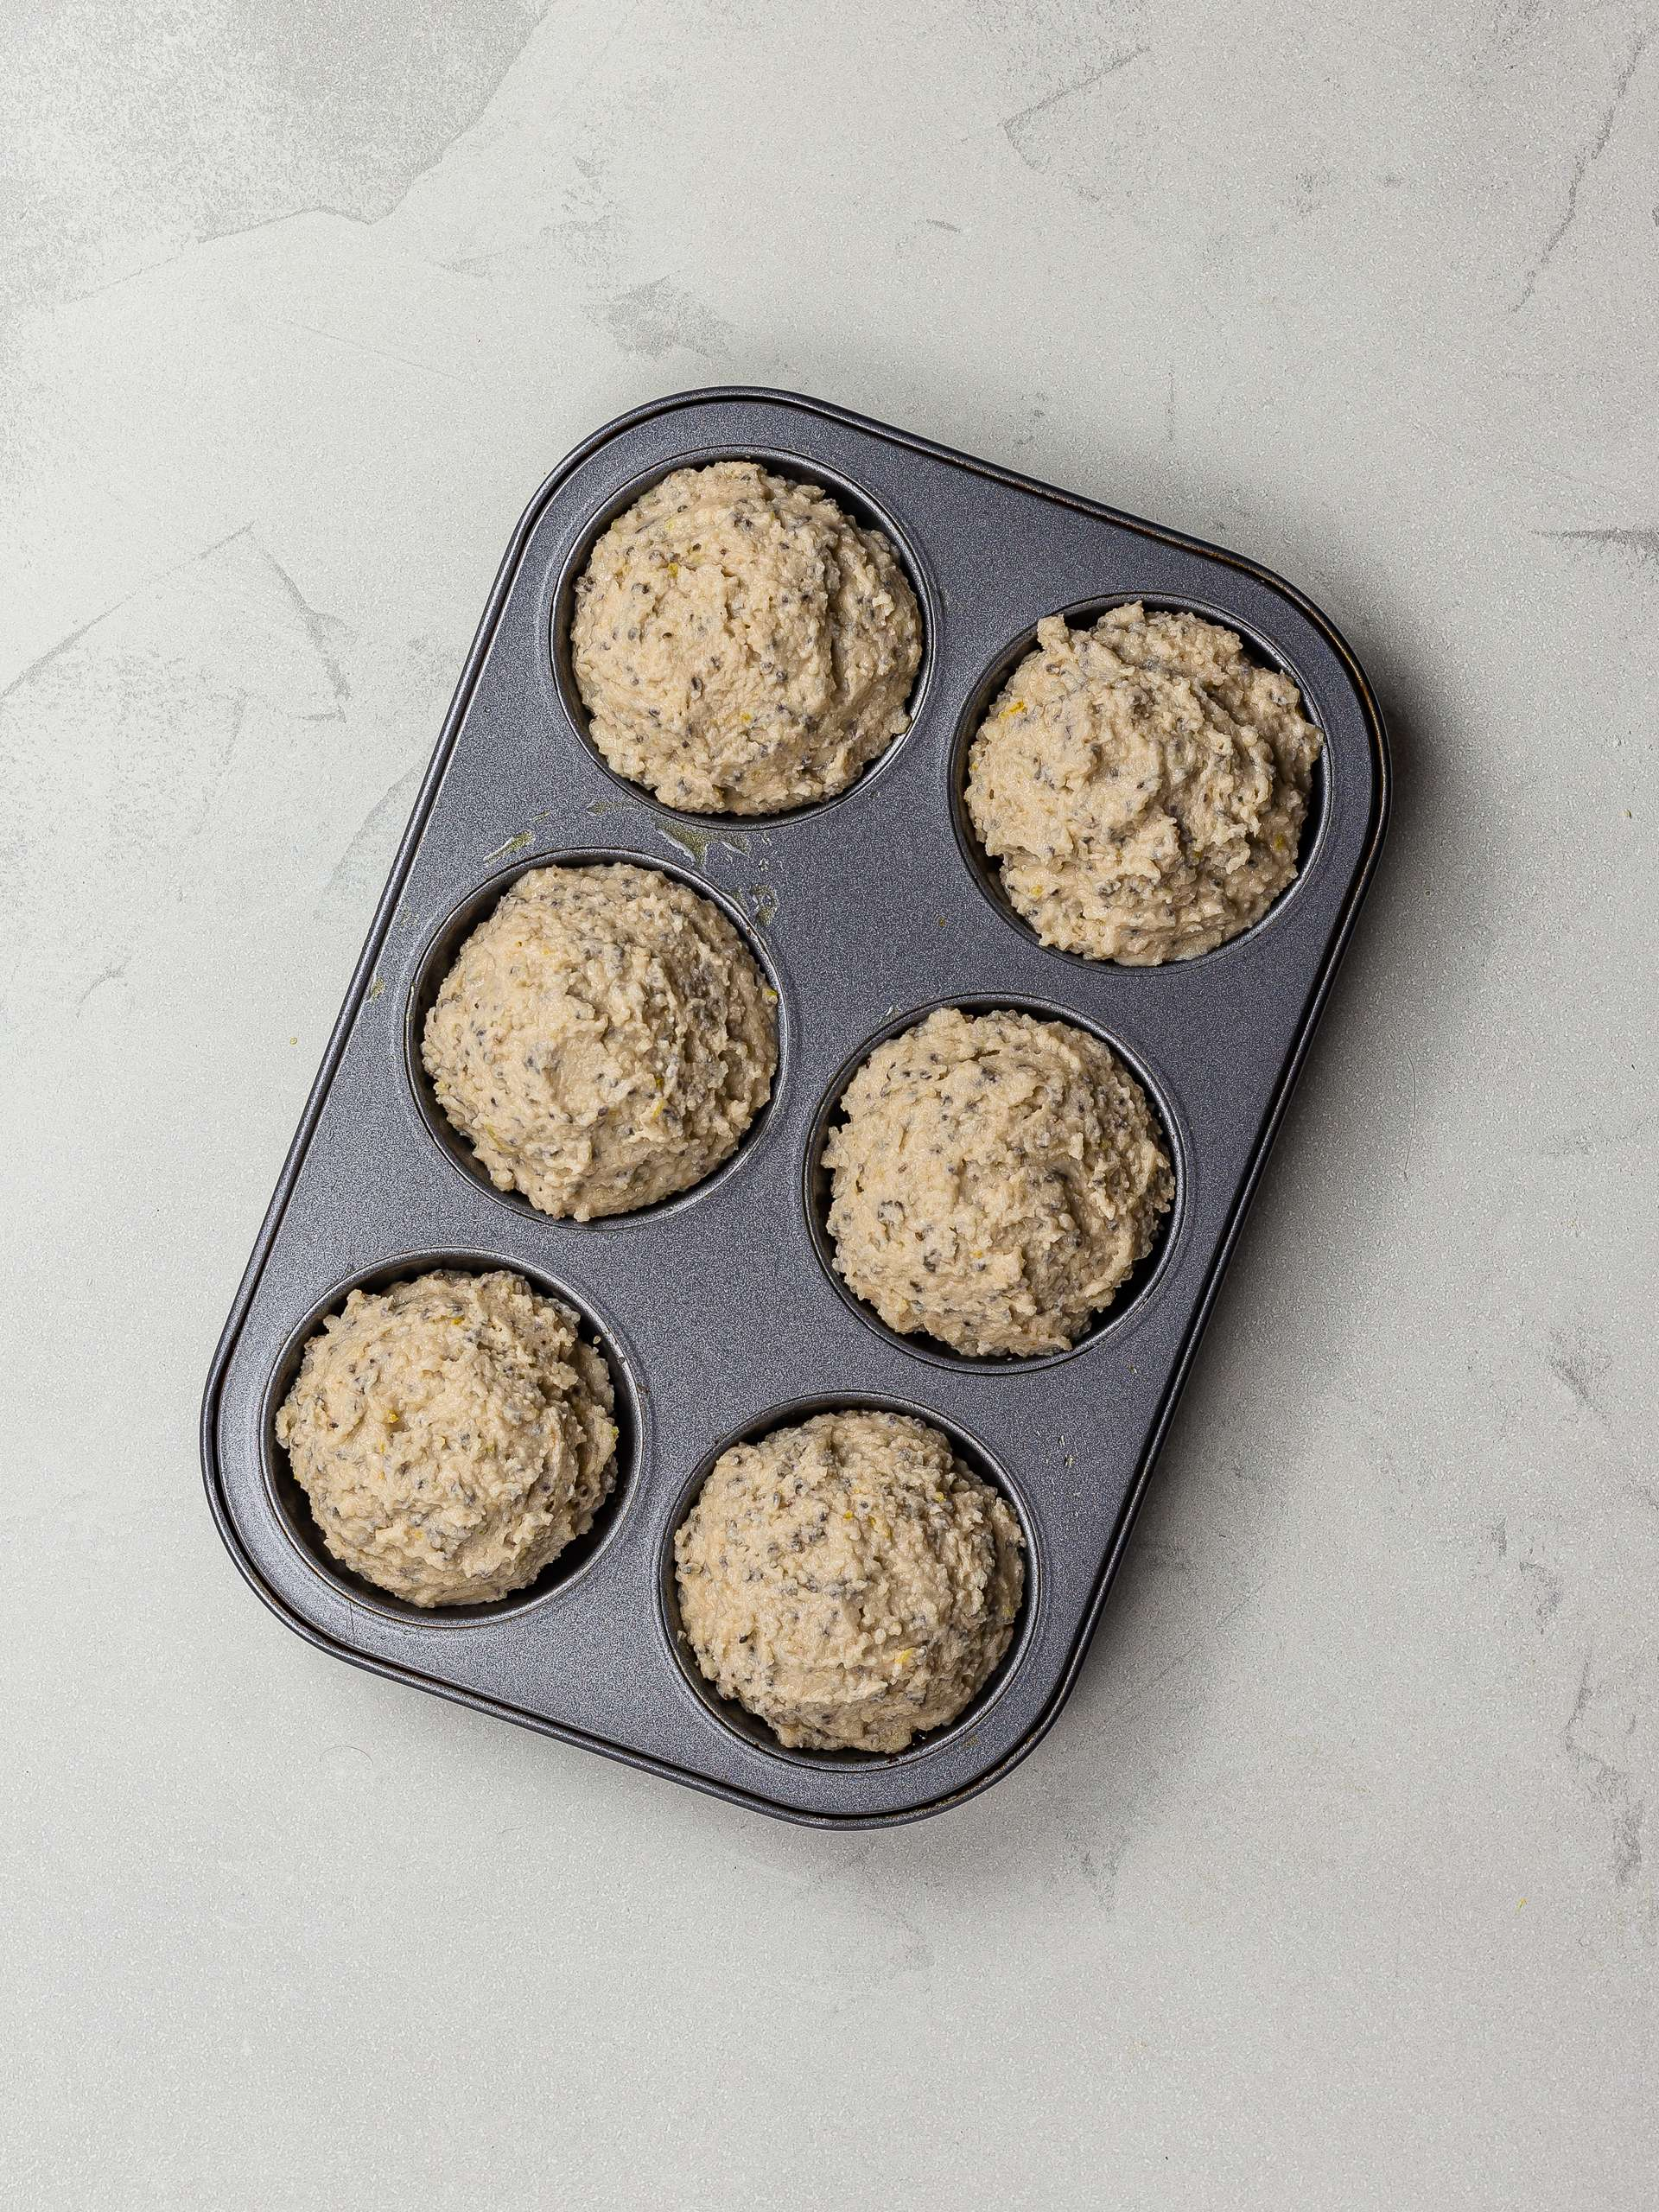 lemon chia seed muffin batter in a muffin tin